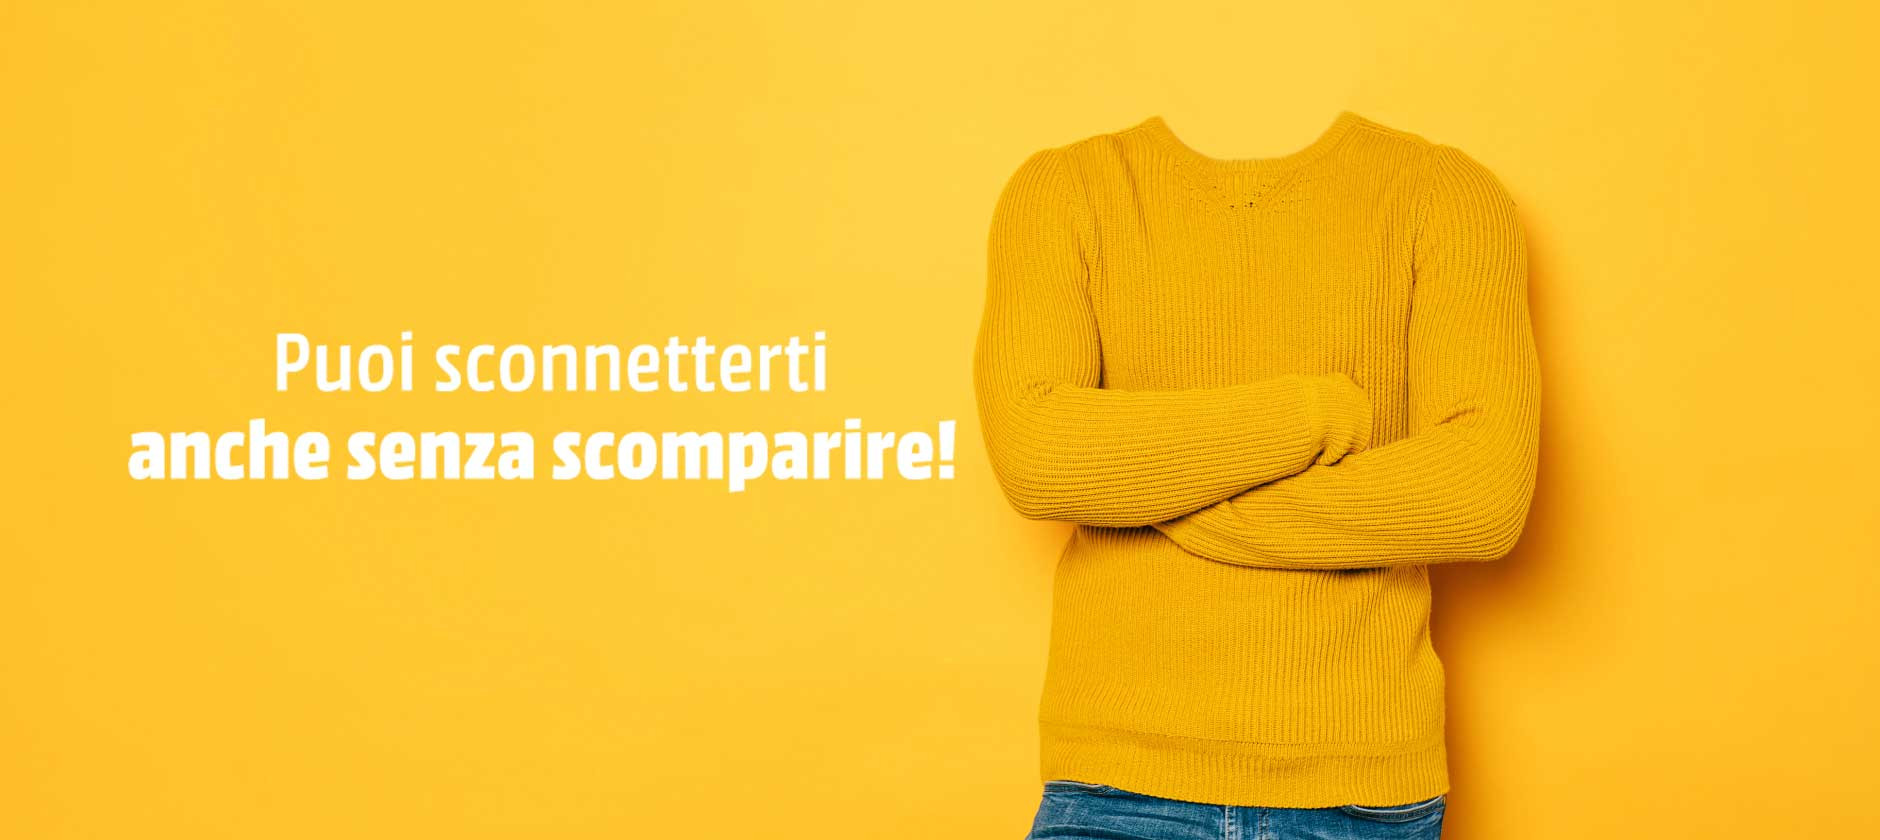 Sconnessi sì… ma con intelligenza